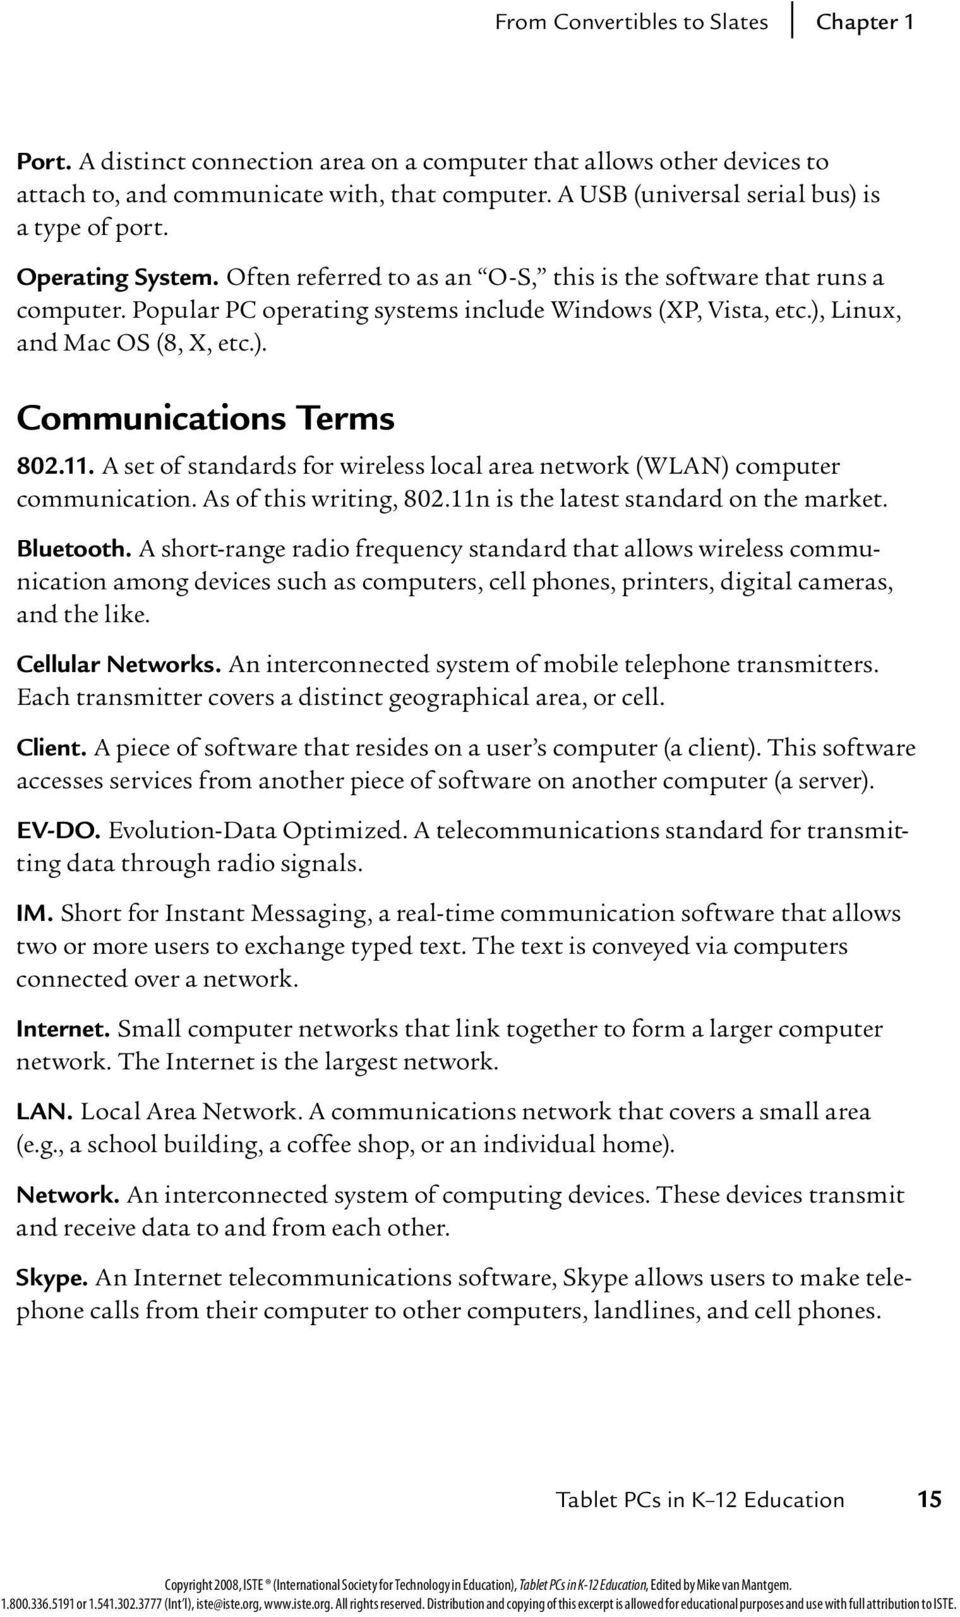 ), Linux, and Mac OS (8, X, etc.). Communications Terms 802.11. A set of standards for wireless local area network (WLAN) computer communication. As of this writing, 802.